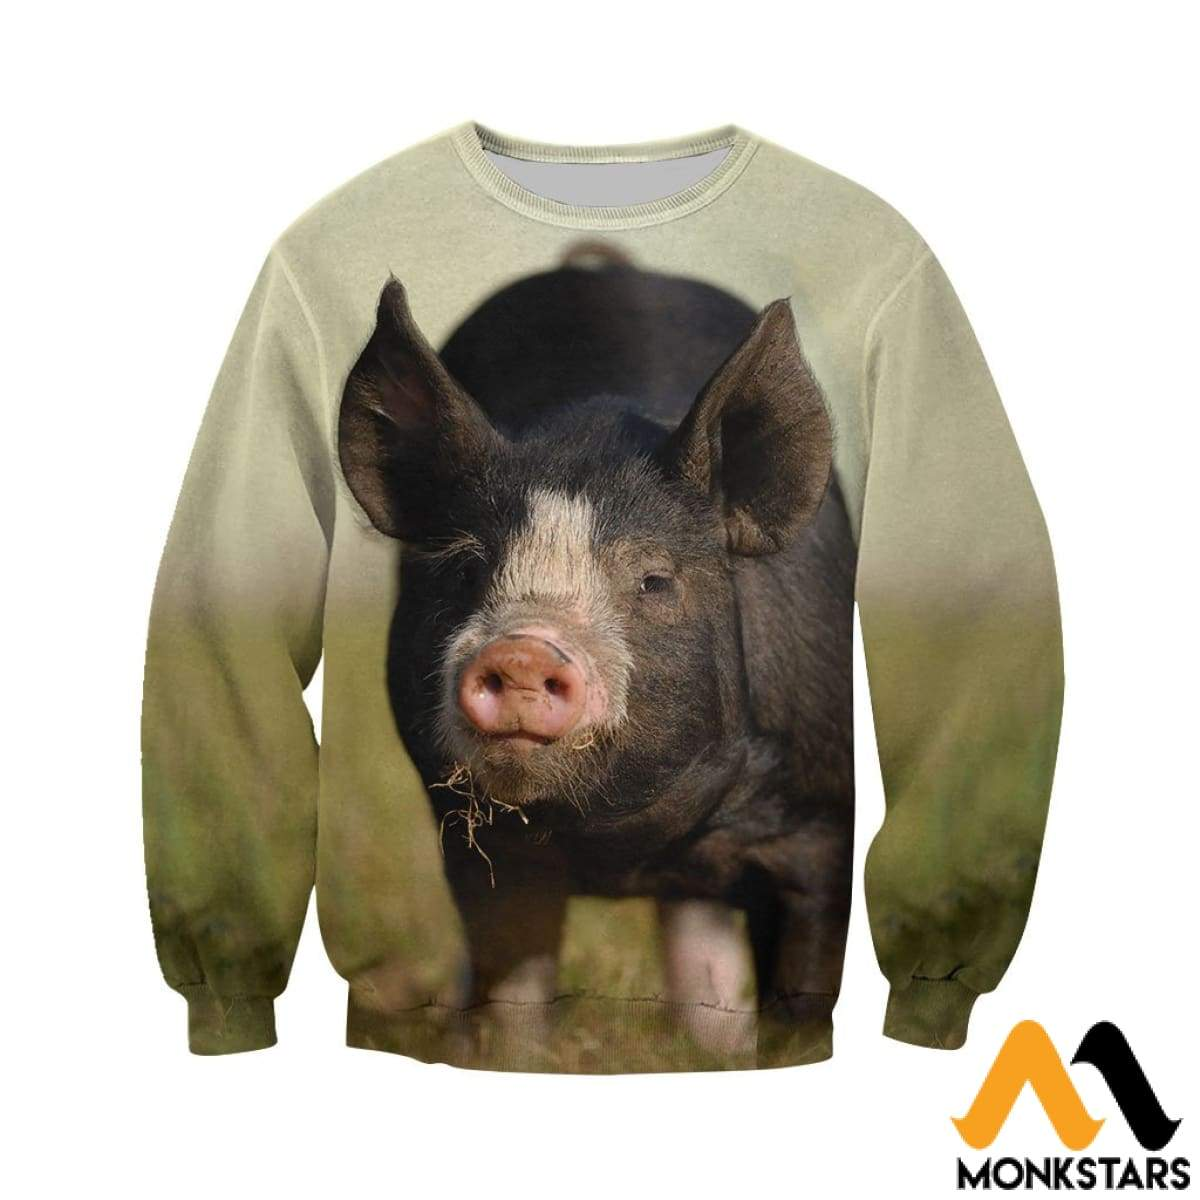 7e1a009b4bde Report Design. Previous. 3D All Over Printed Berkshire Pig Shirts ...